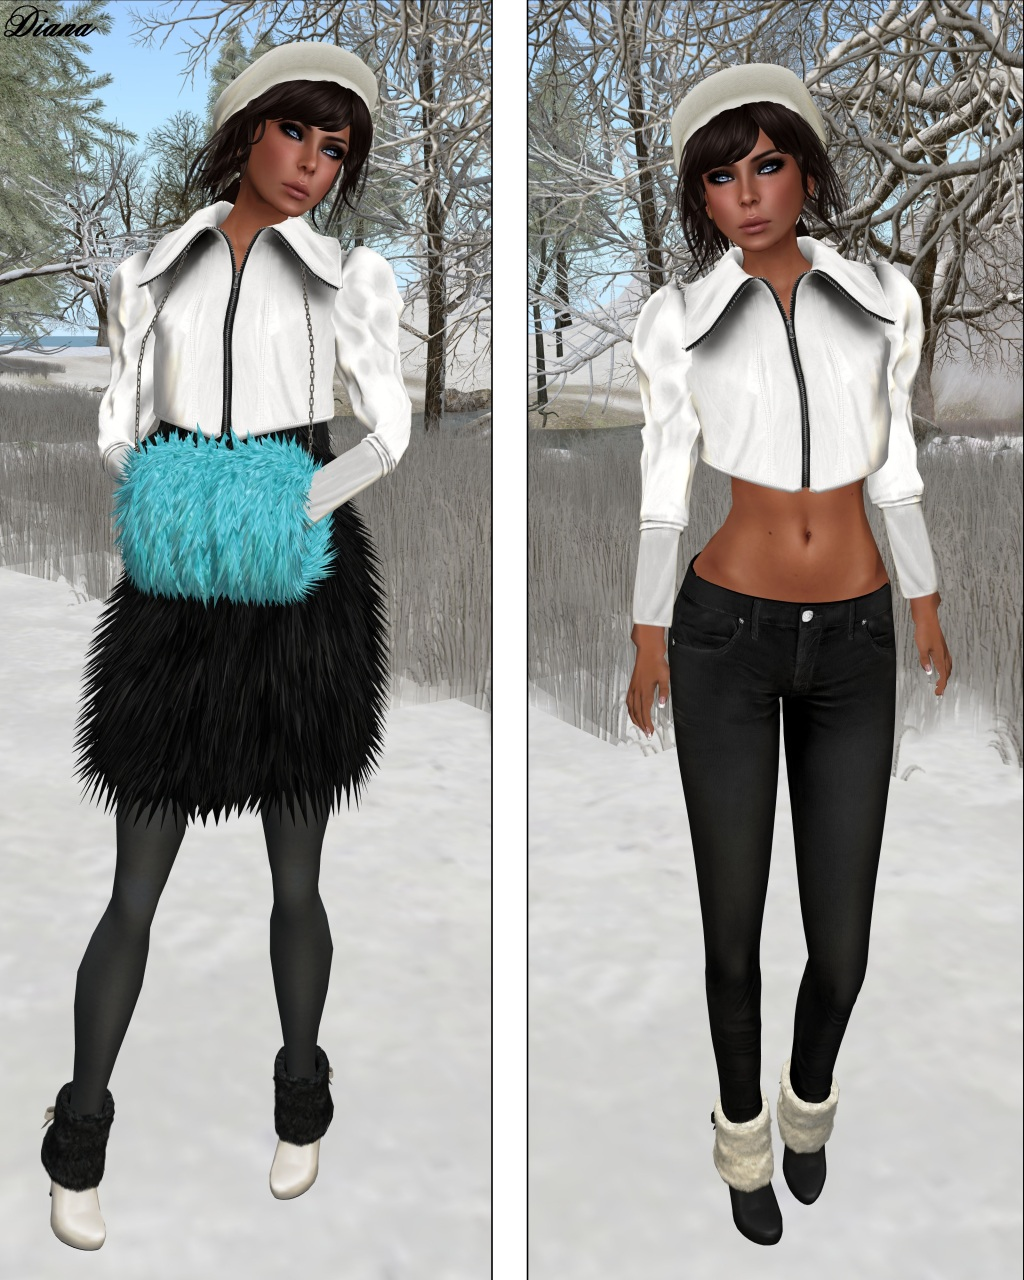 COCO - CroppedJacket (White) and FurMuff (Cyan)